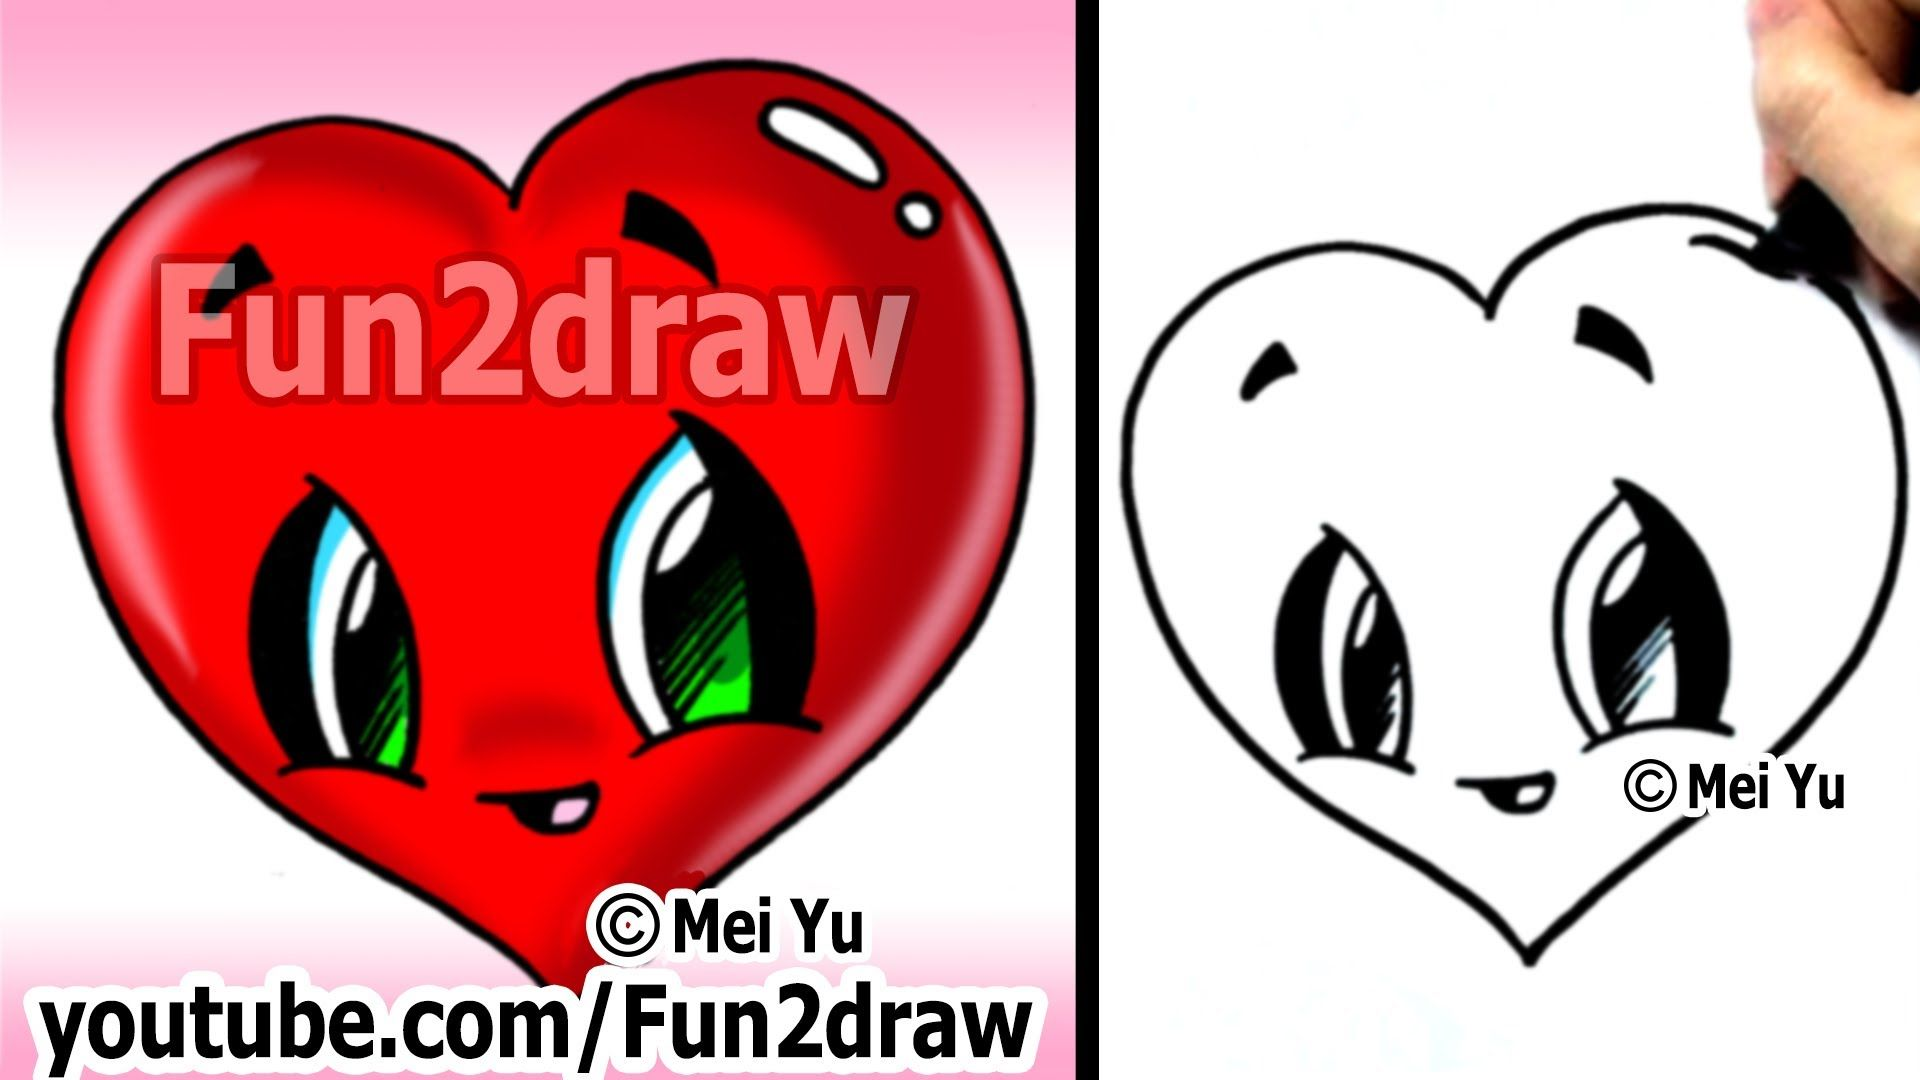 How To Draw A Heart Easy Cute Popular Cartoon Drawing Video Fun Cartoon Drawings Fun2draw Easy Drawings